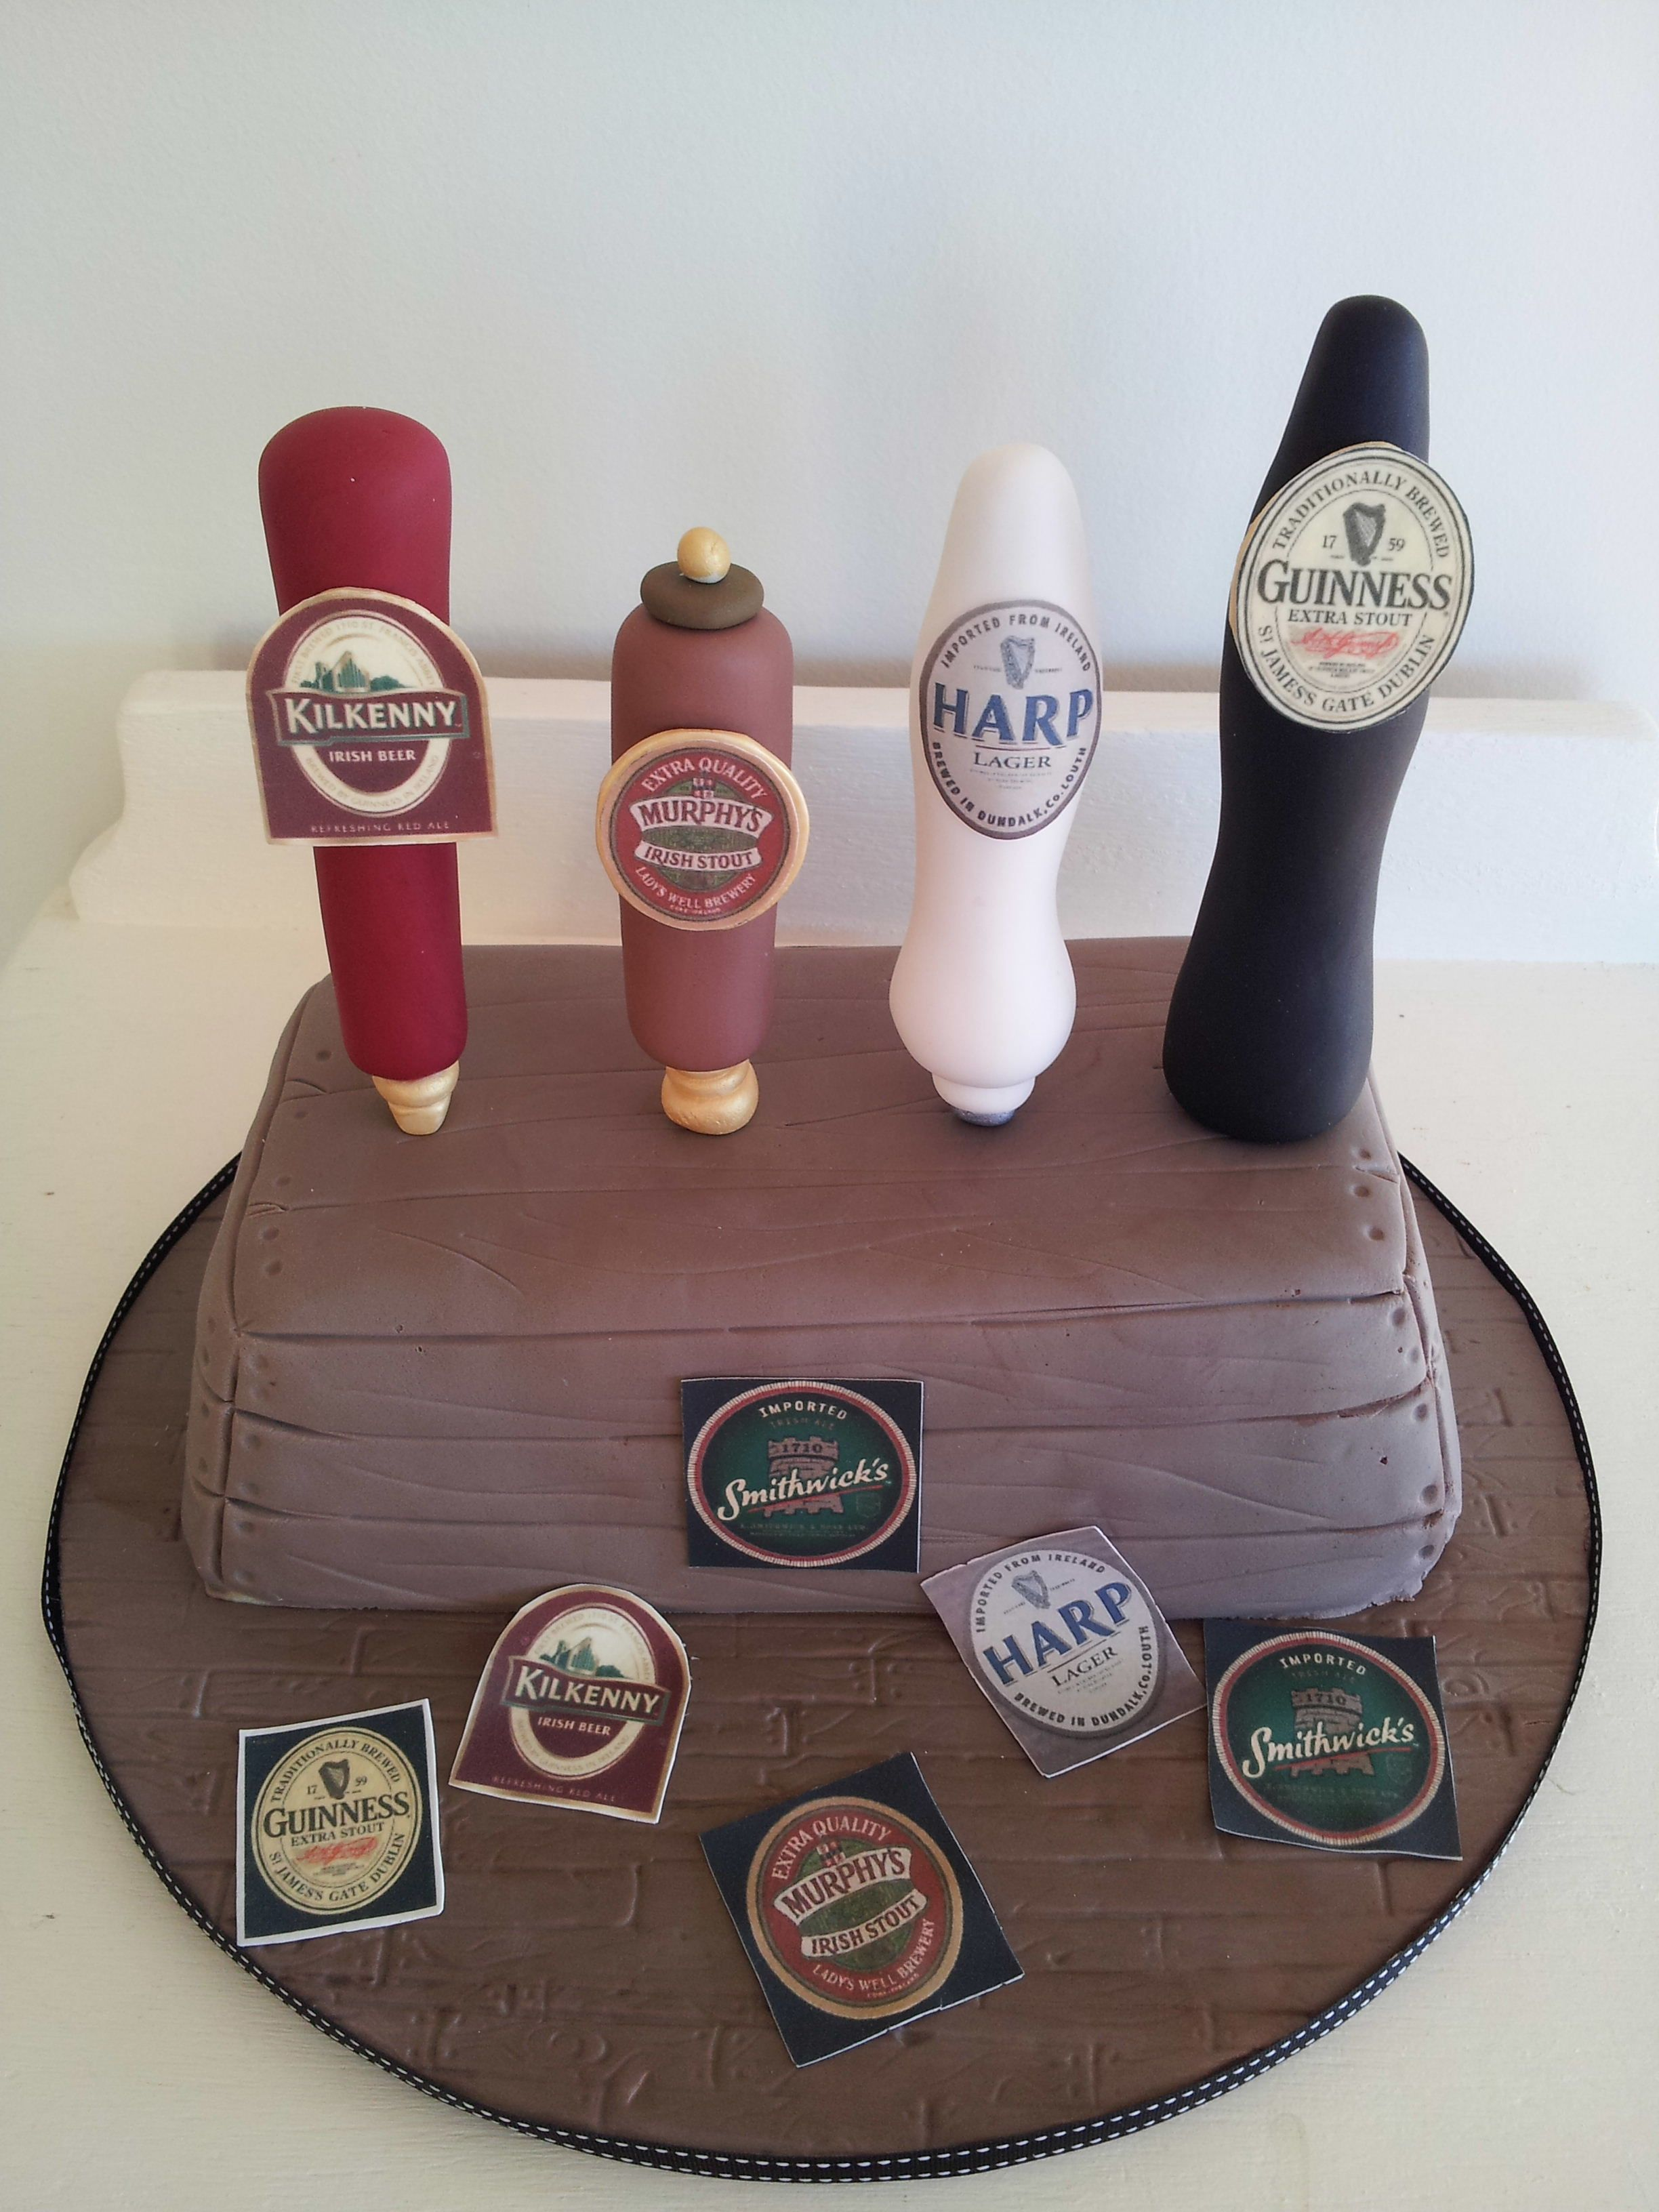 Birthday cakes for adults men google search adult cakes pinterest beer cakes birthdays - Mens cake decorating ideas ...